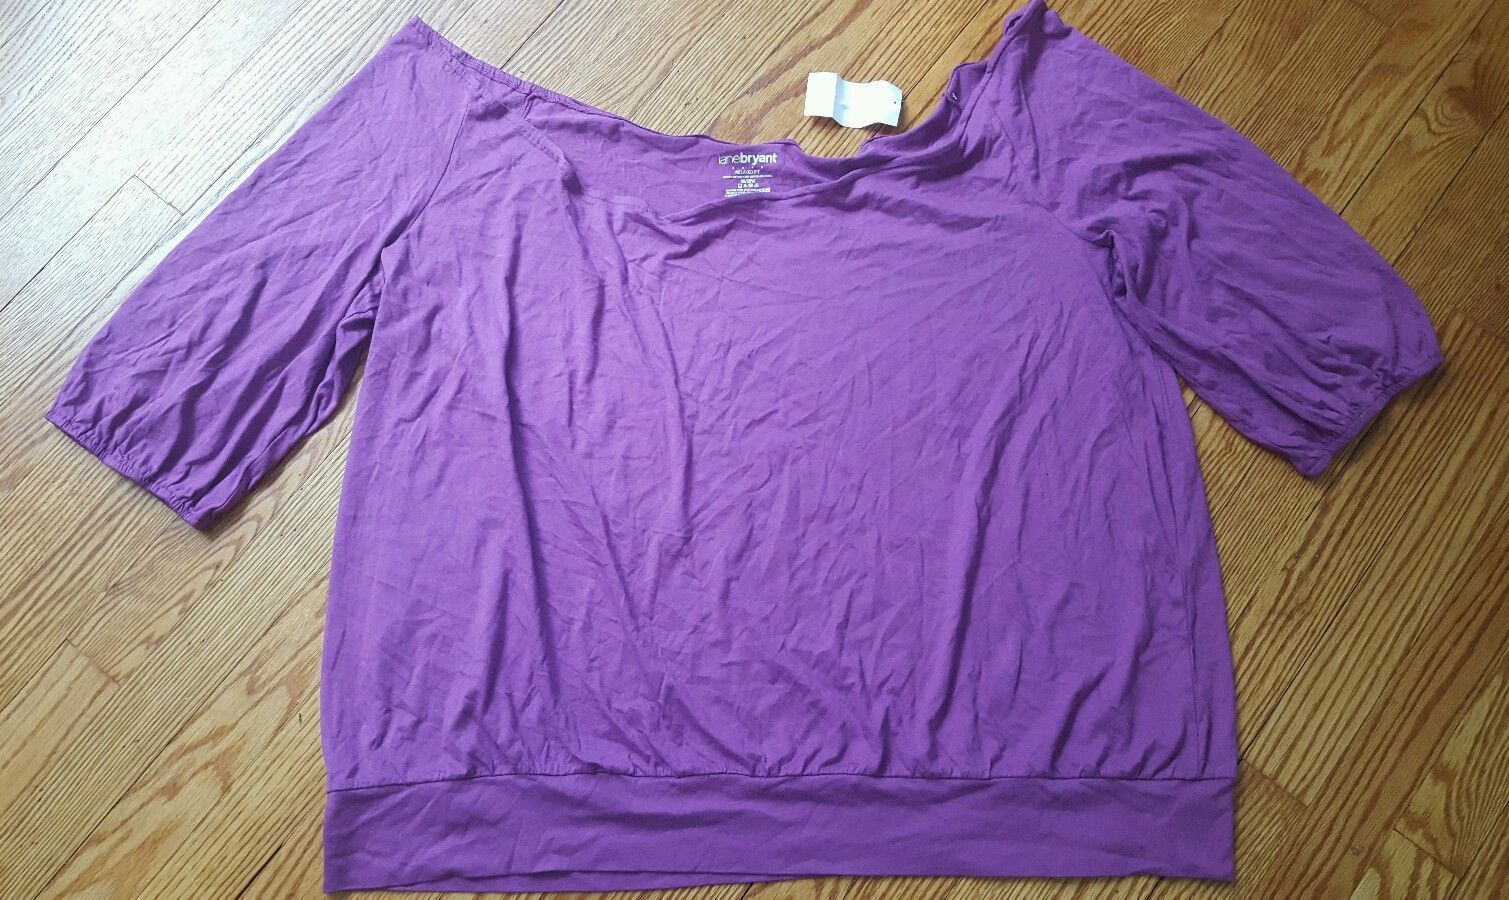 NWT LANE BRYANT Womens Plus Size 26/28W Pink Cotton Blend Relaxed Fit NEW